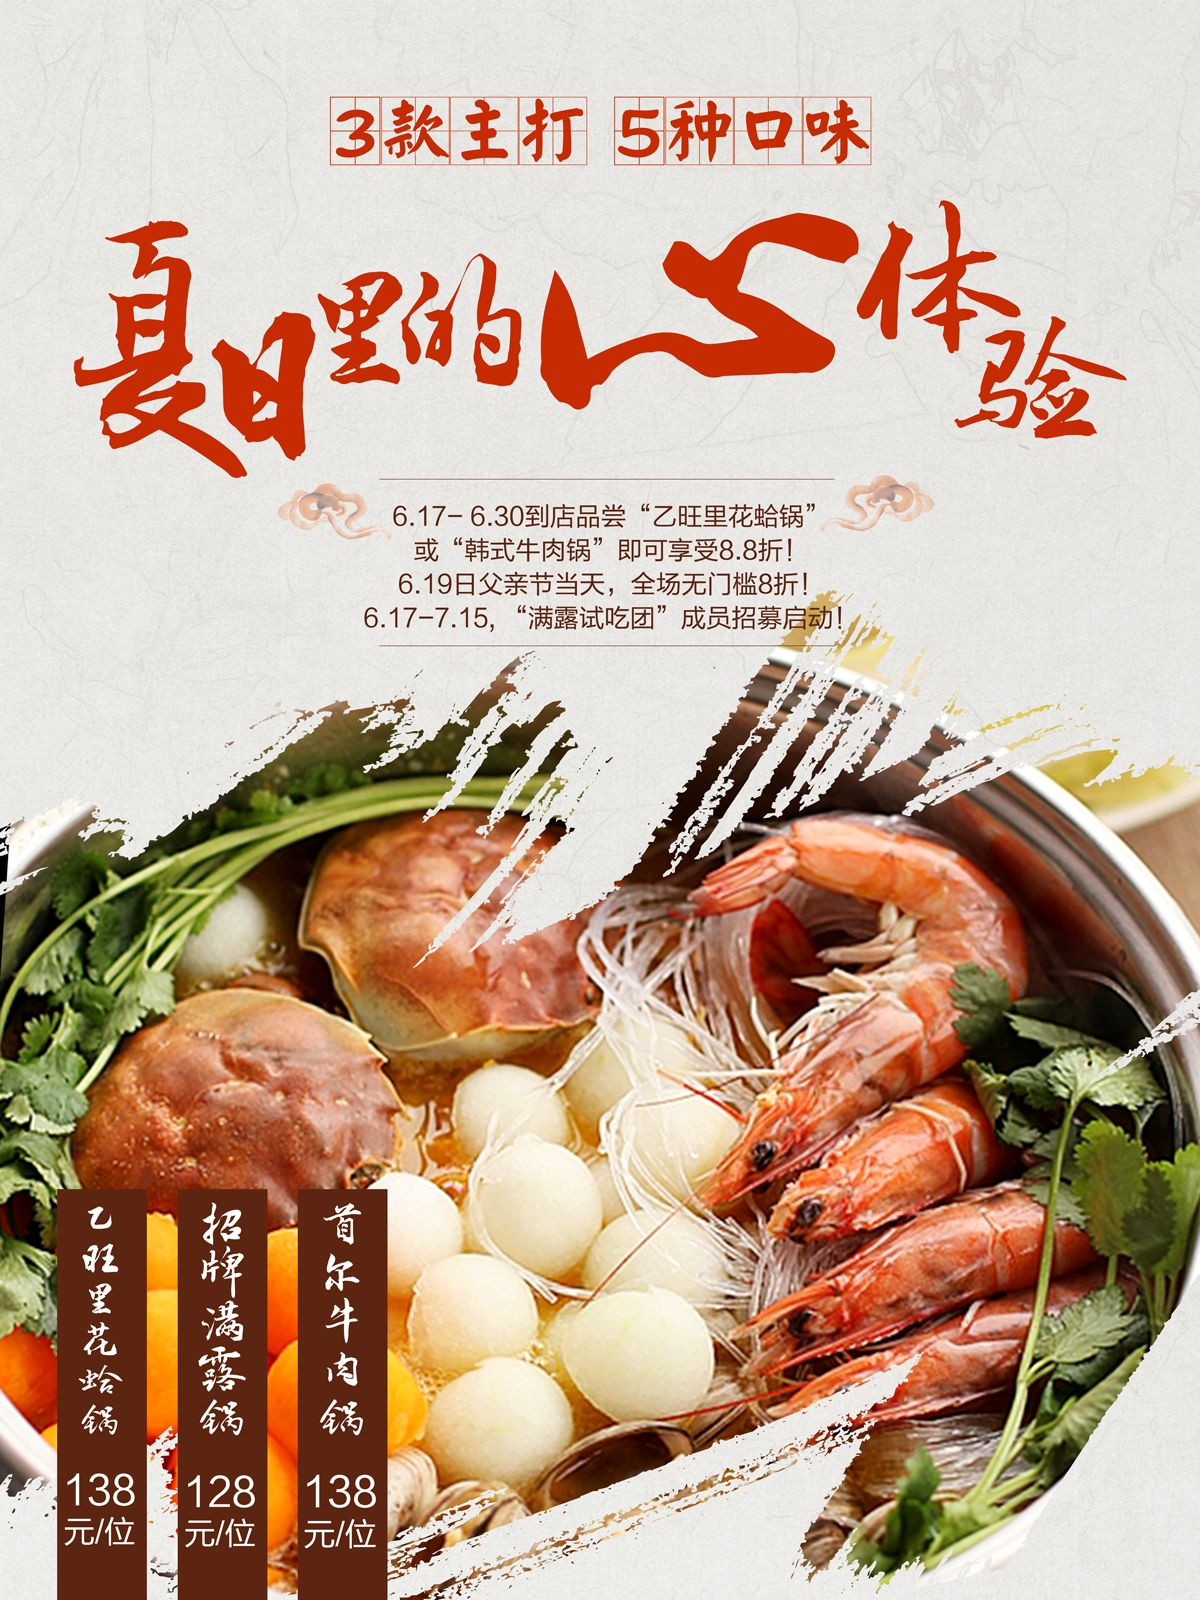 Chinese Hot Pot Food Poster Design China Psd File Free Download Food Poster Food Poster Design Food